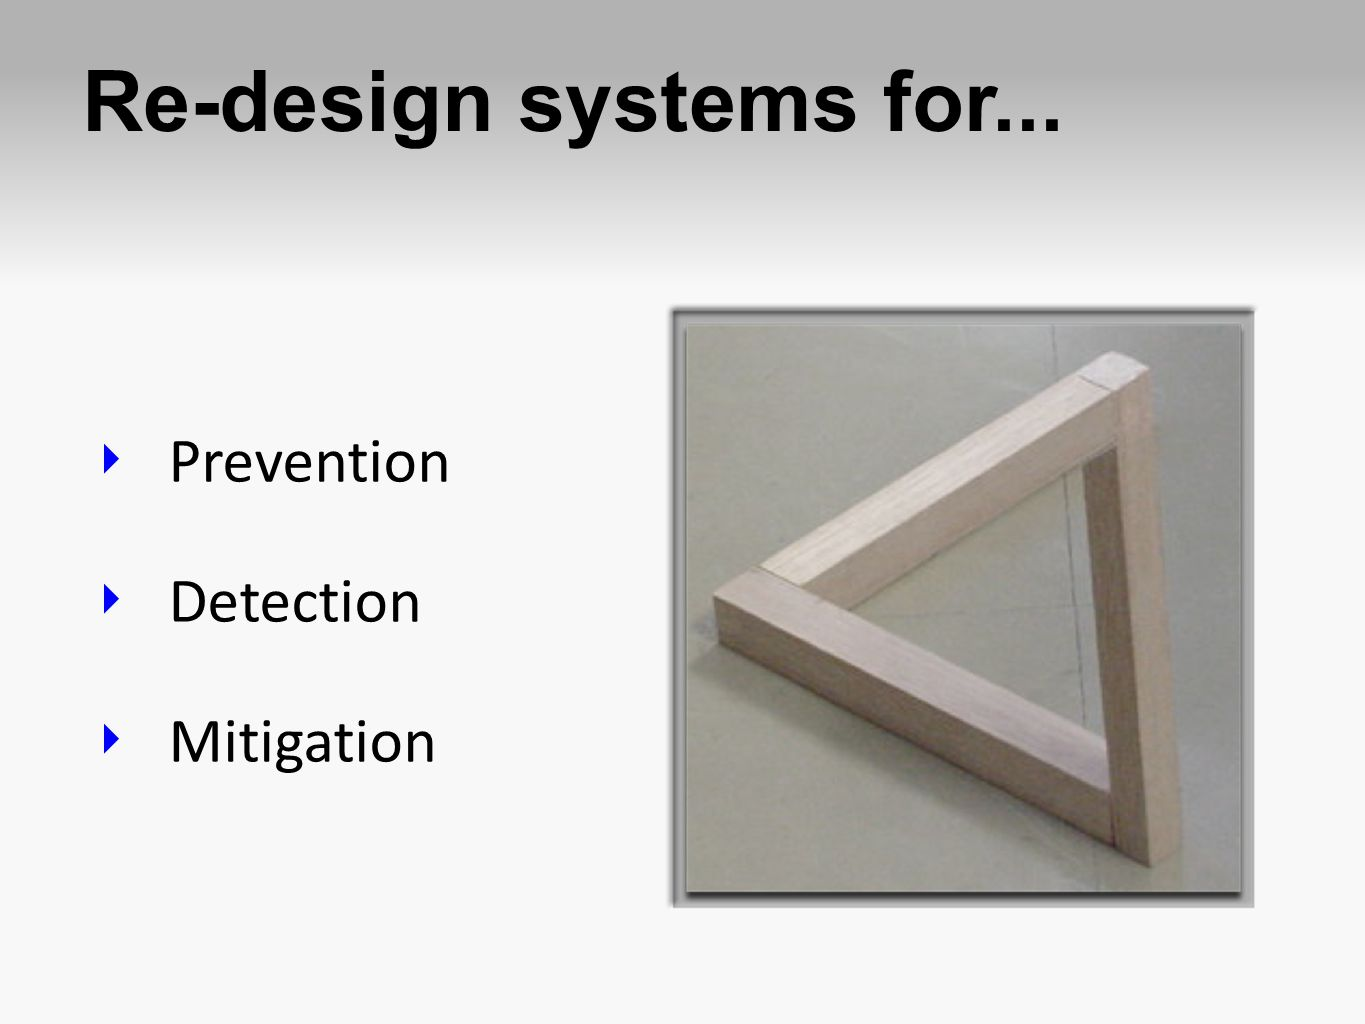 Re-design systems for... Prevention Detection Mitigation